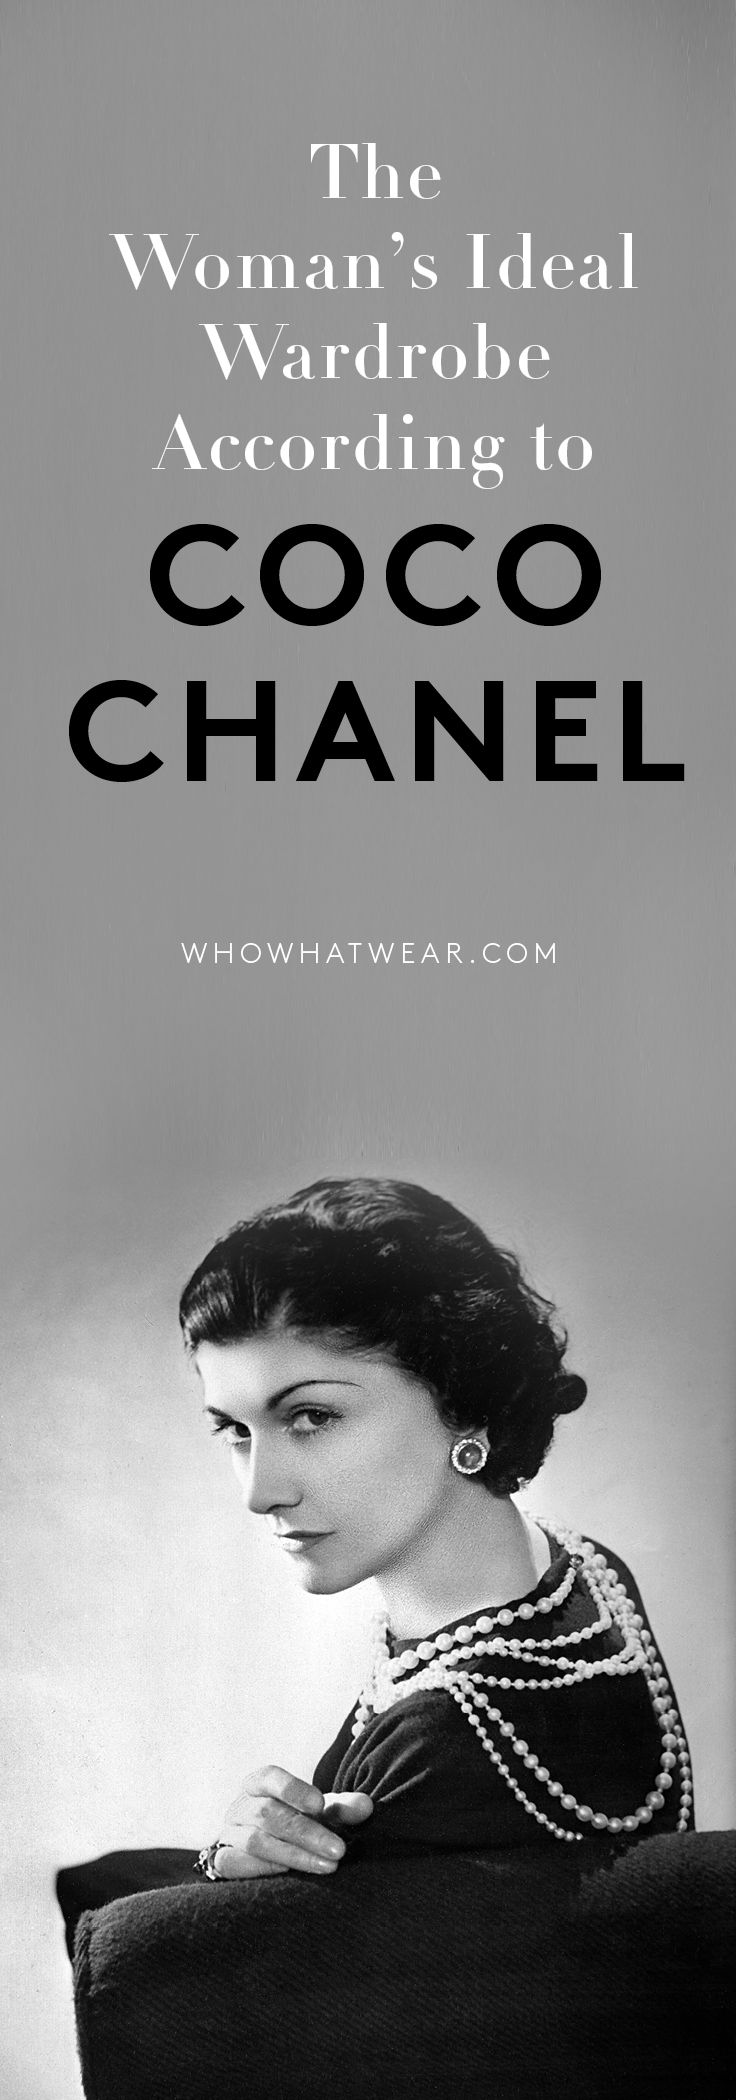 Wardrobe tips and tricks from that French original, Coco Chanel.